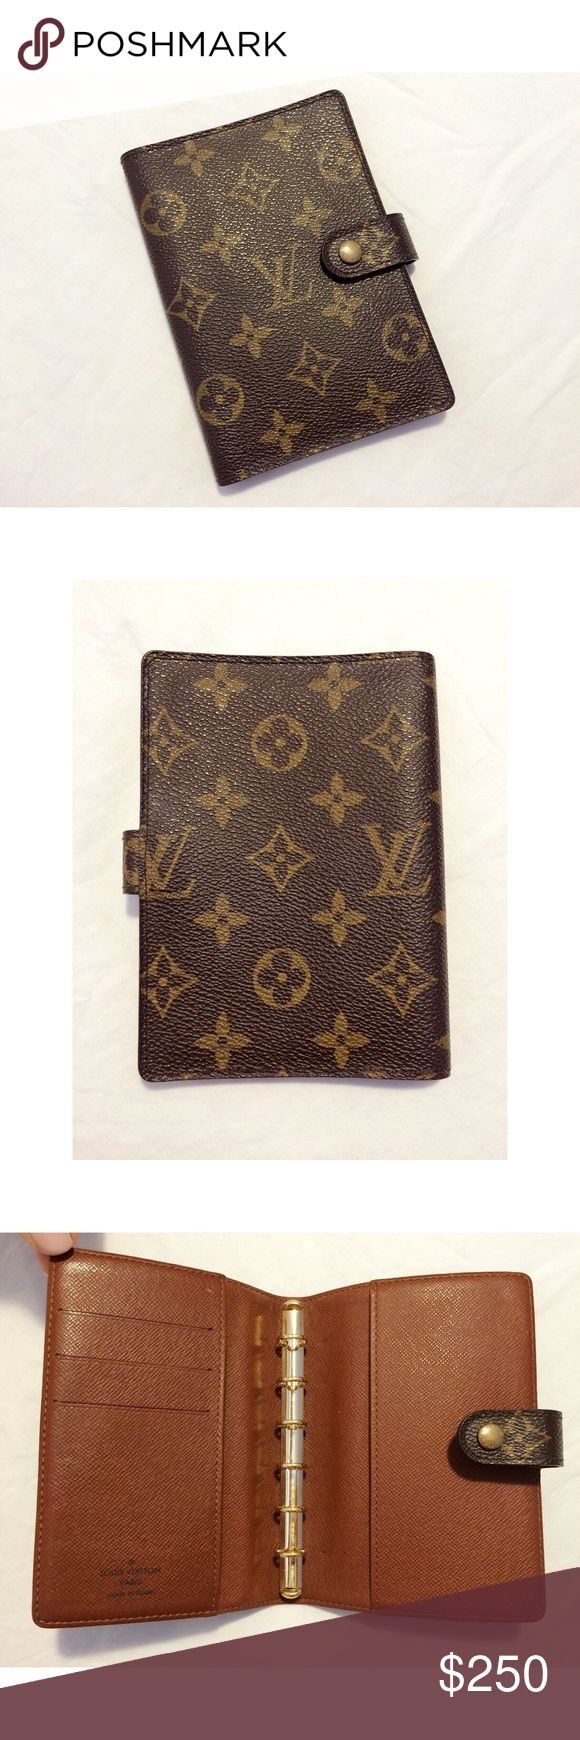 """Louis Vuitton Monogram Agenda Louis Vuitton classic monogram agenda PM diary cover.  Preowned, in very condition.  About 5.75"""" tall and 4"""" across.  Date code: CA0042.  No trades. Louis Vuitton Accessories"""